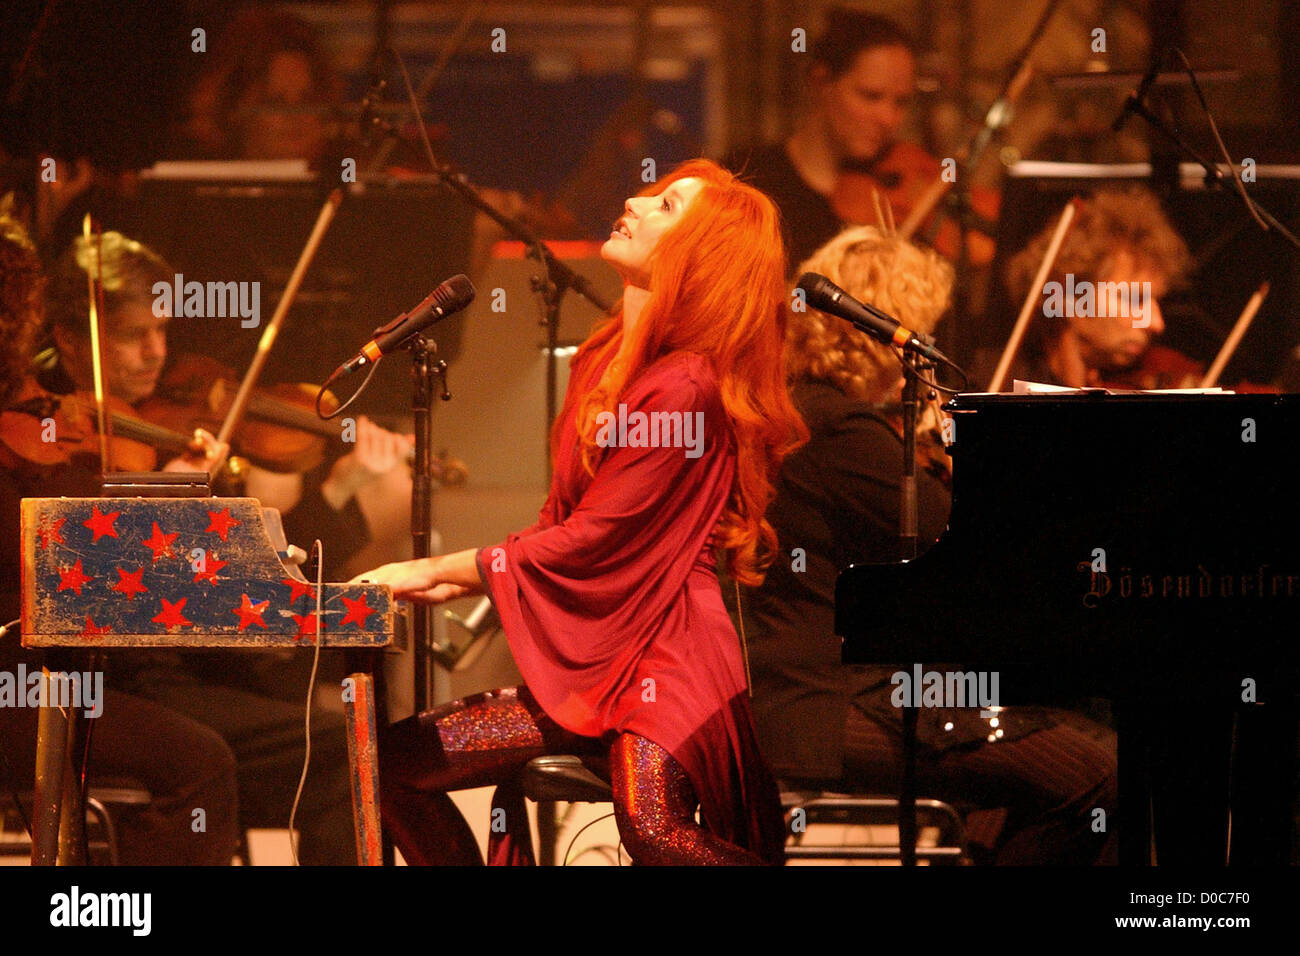 Tori Amos performs during her sold out concert with the Metrople Orchestra at the Heineken Music Hall Amsterdam, Stock Photo